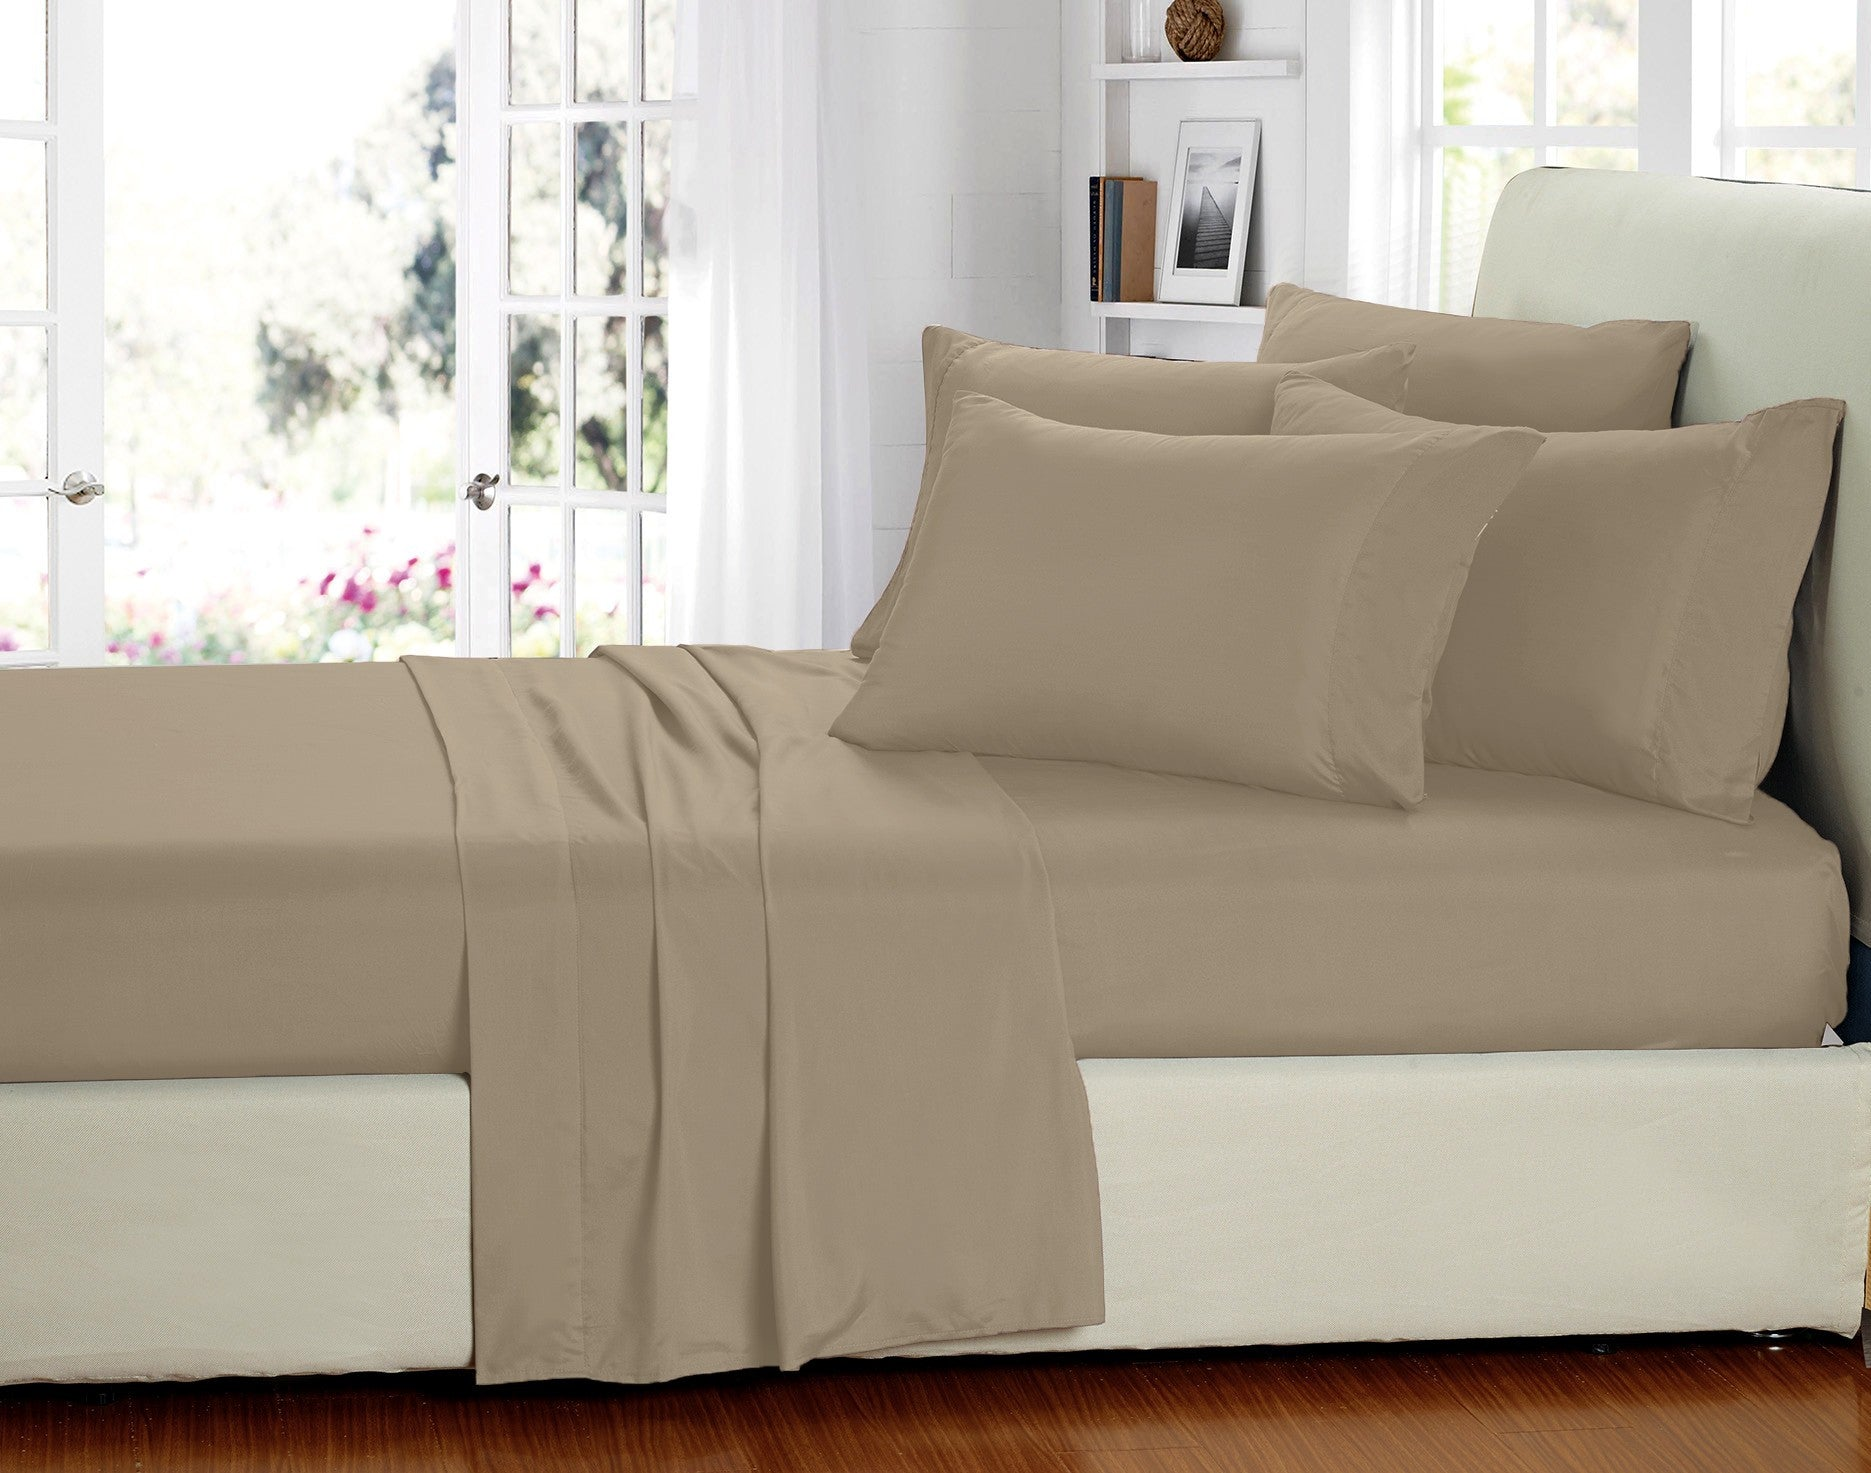 6 Piece Set: Super-Soft 2000 Series Bamboo Fiber Bed Sheets - 12 Colors - Flash Steals